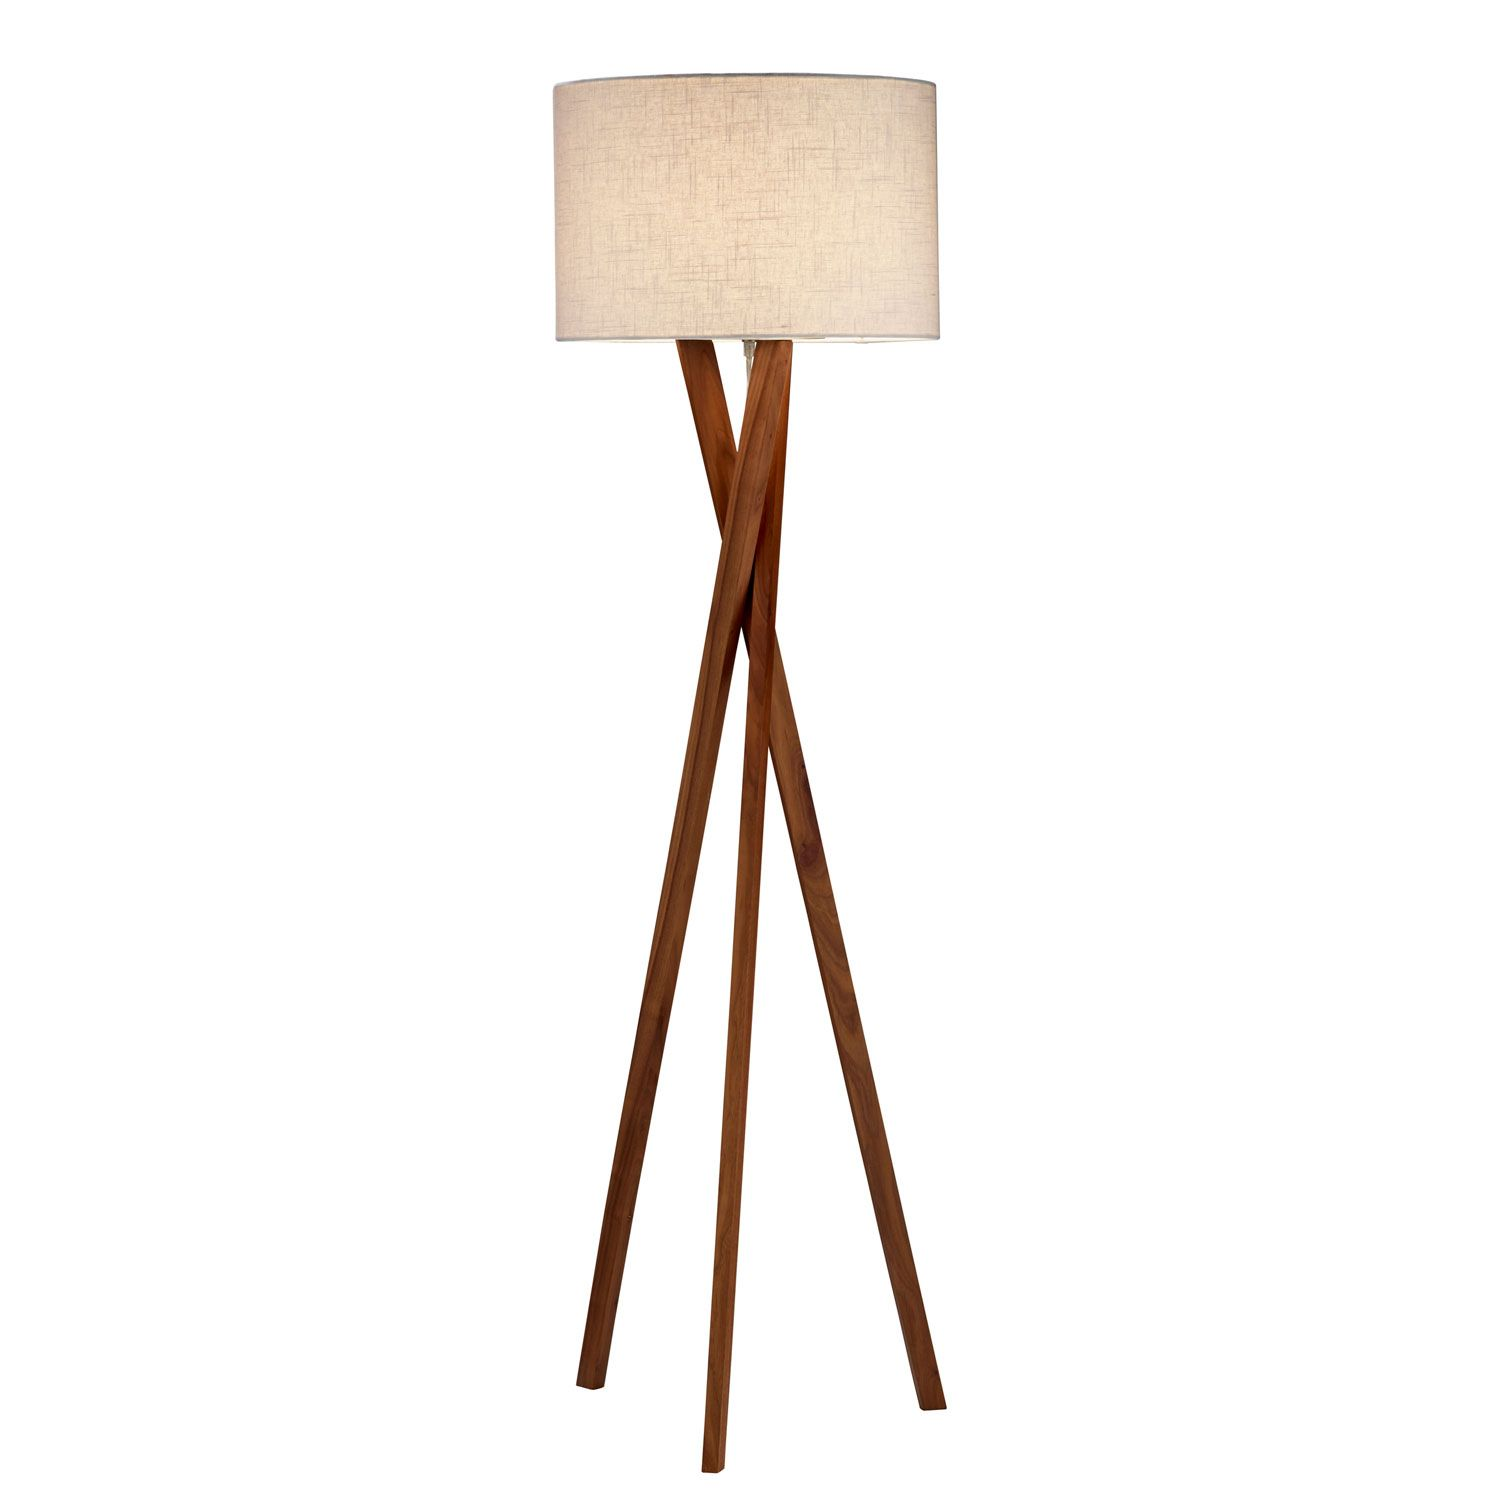 Walnut Wood Tripod Austin Floor Lamp Base Saferbrowser Yahoo Image Search Results Modern Tripod Floor Lamp Contemporary Floor Lamps Modern Floor Lamps